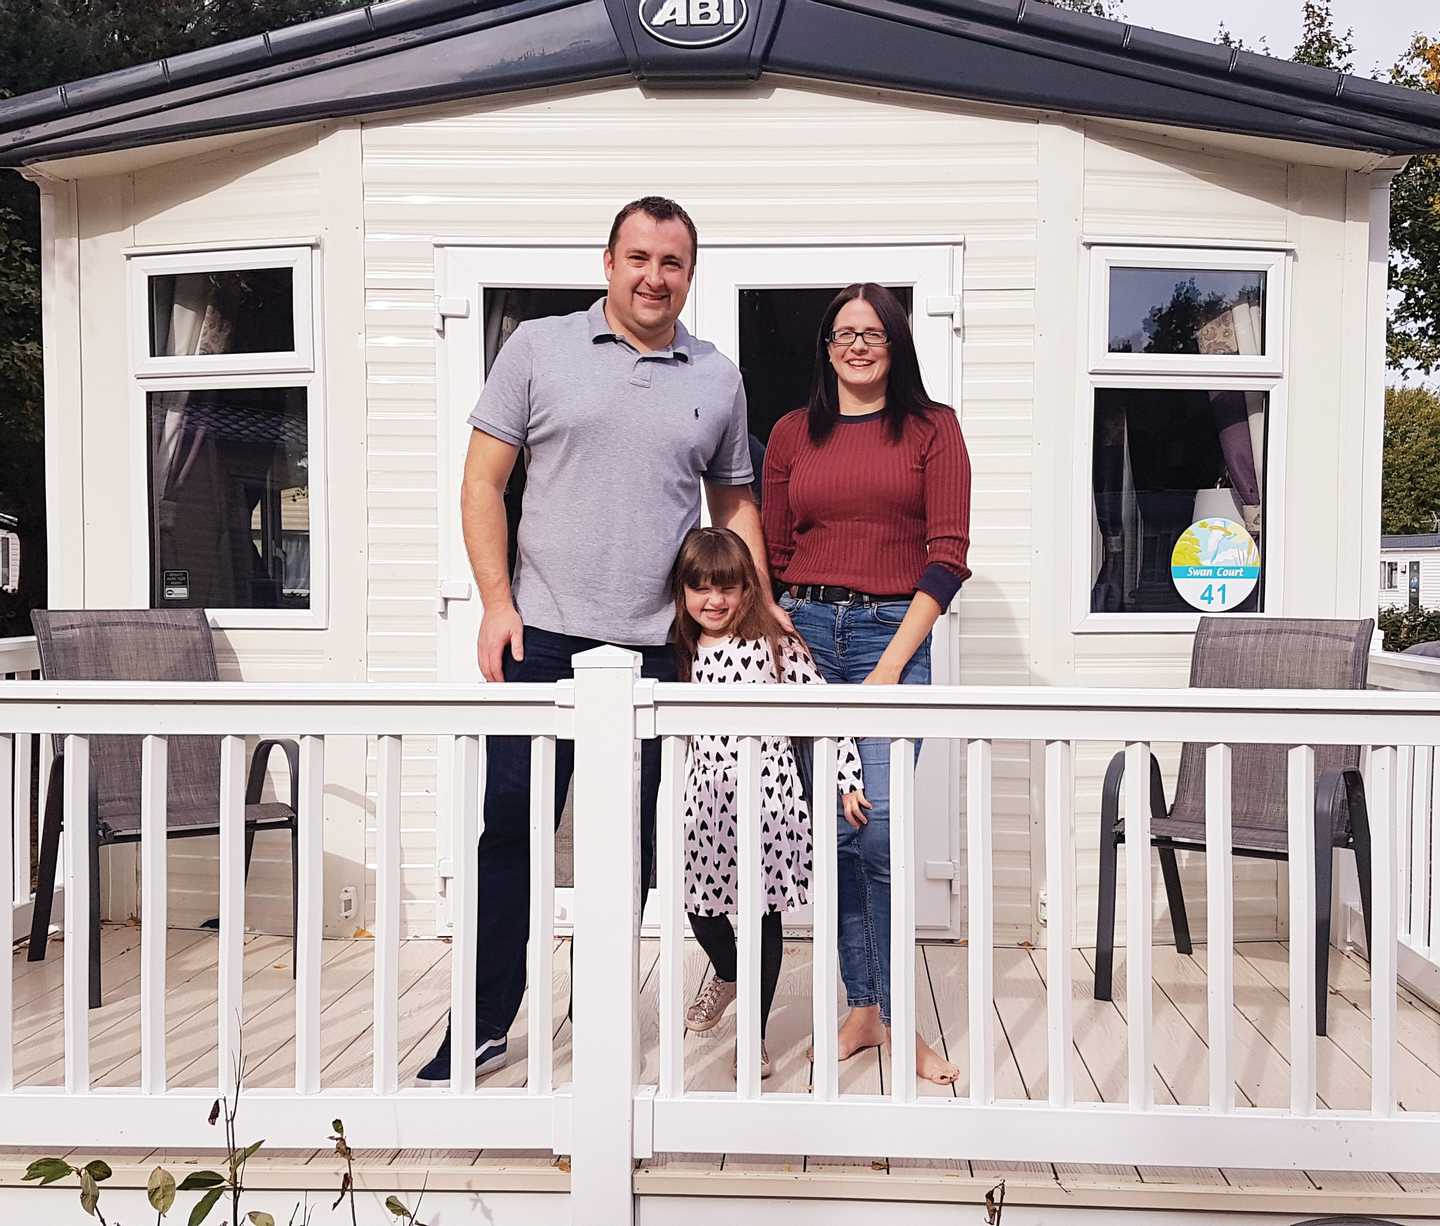 The Sims family, owners at Wild Duck